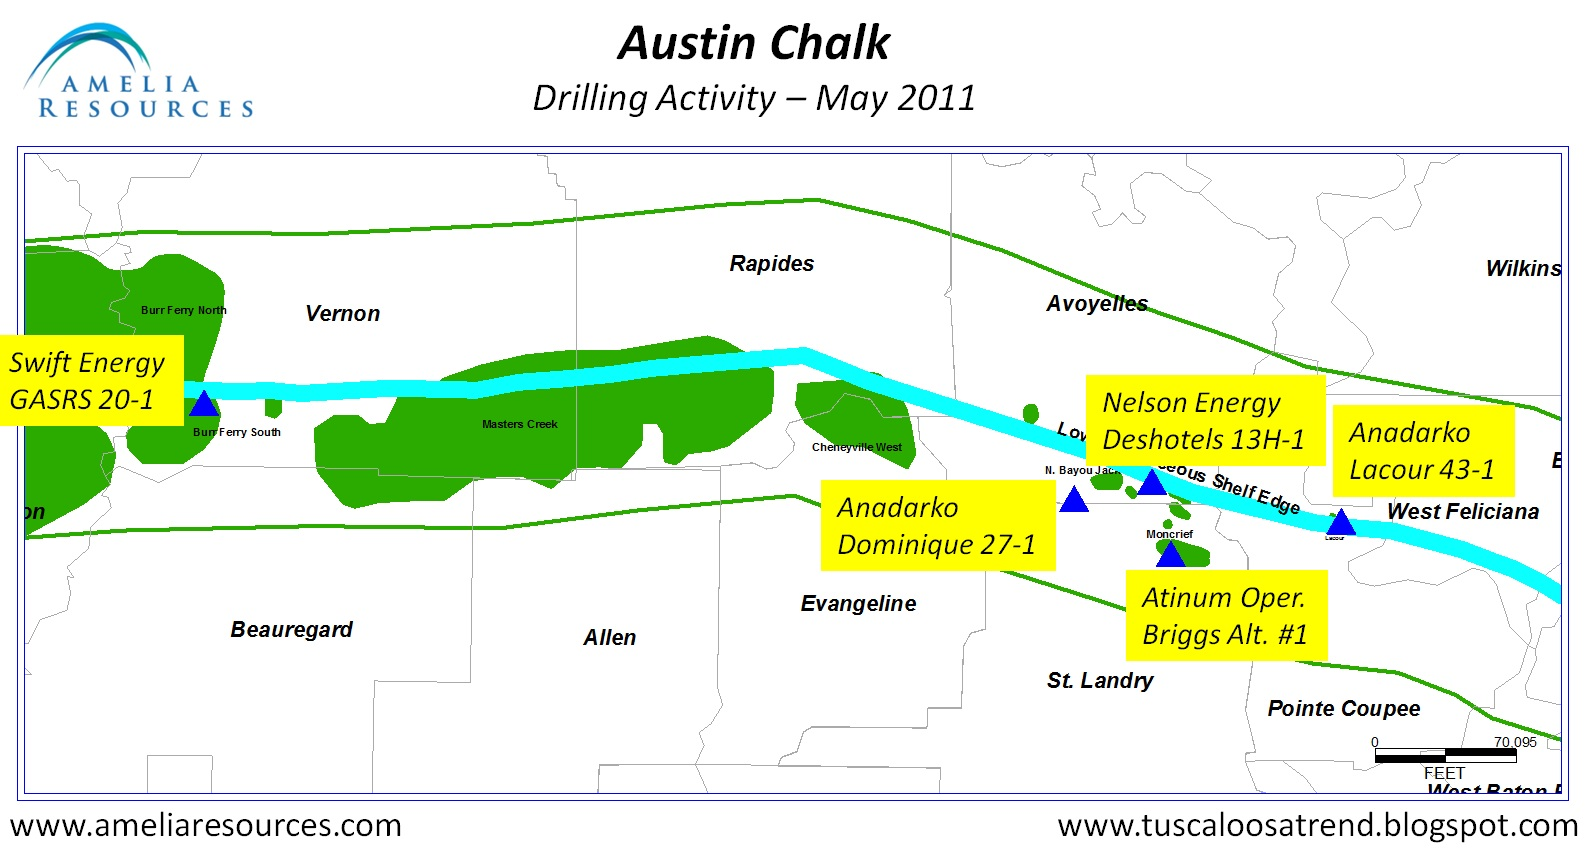 Tuscaloosa Trend The Austin Chalk Drilling Activity Heads